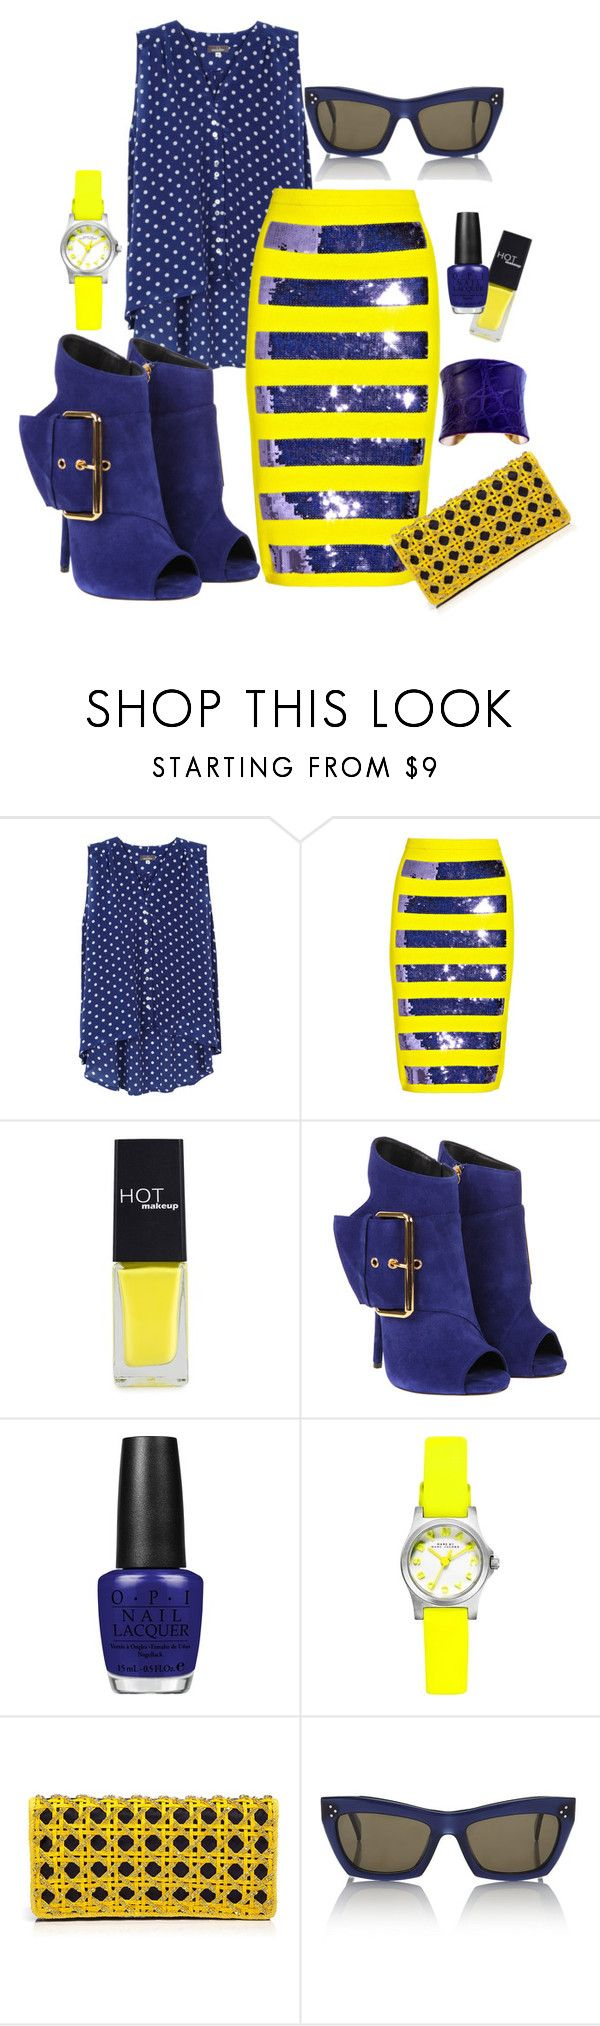 """""""Mixing Stripes and Polka Dots"""" by ruzindedeugd ❤ liked on Polyvore featuring Mercy Delta, Marc Jacobs, HOTmakeup, Giuseppe Zanotti, OPI, Marc by Marc Jacobs, Balmain, CÉLINE and UNEARTHED"""